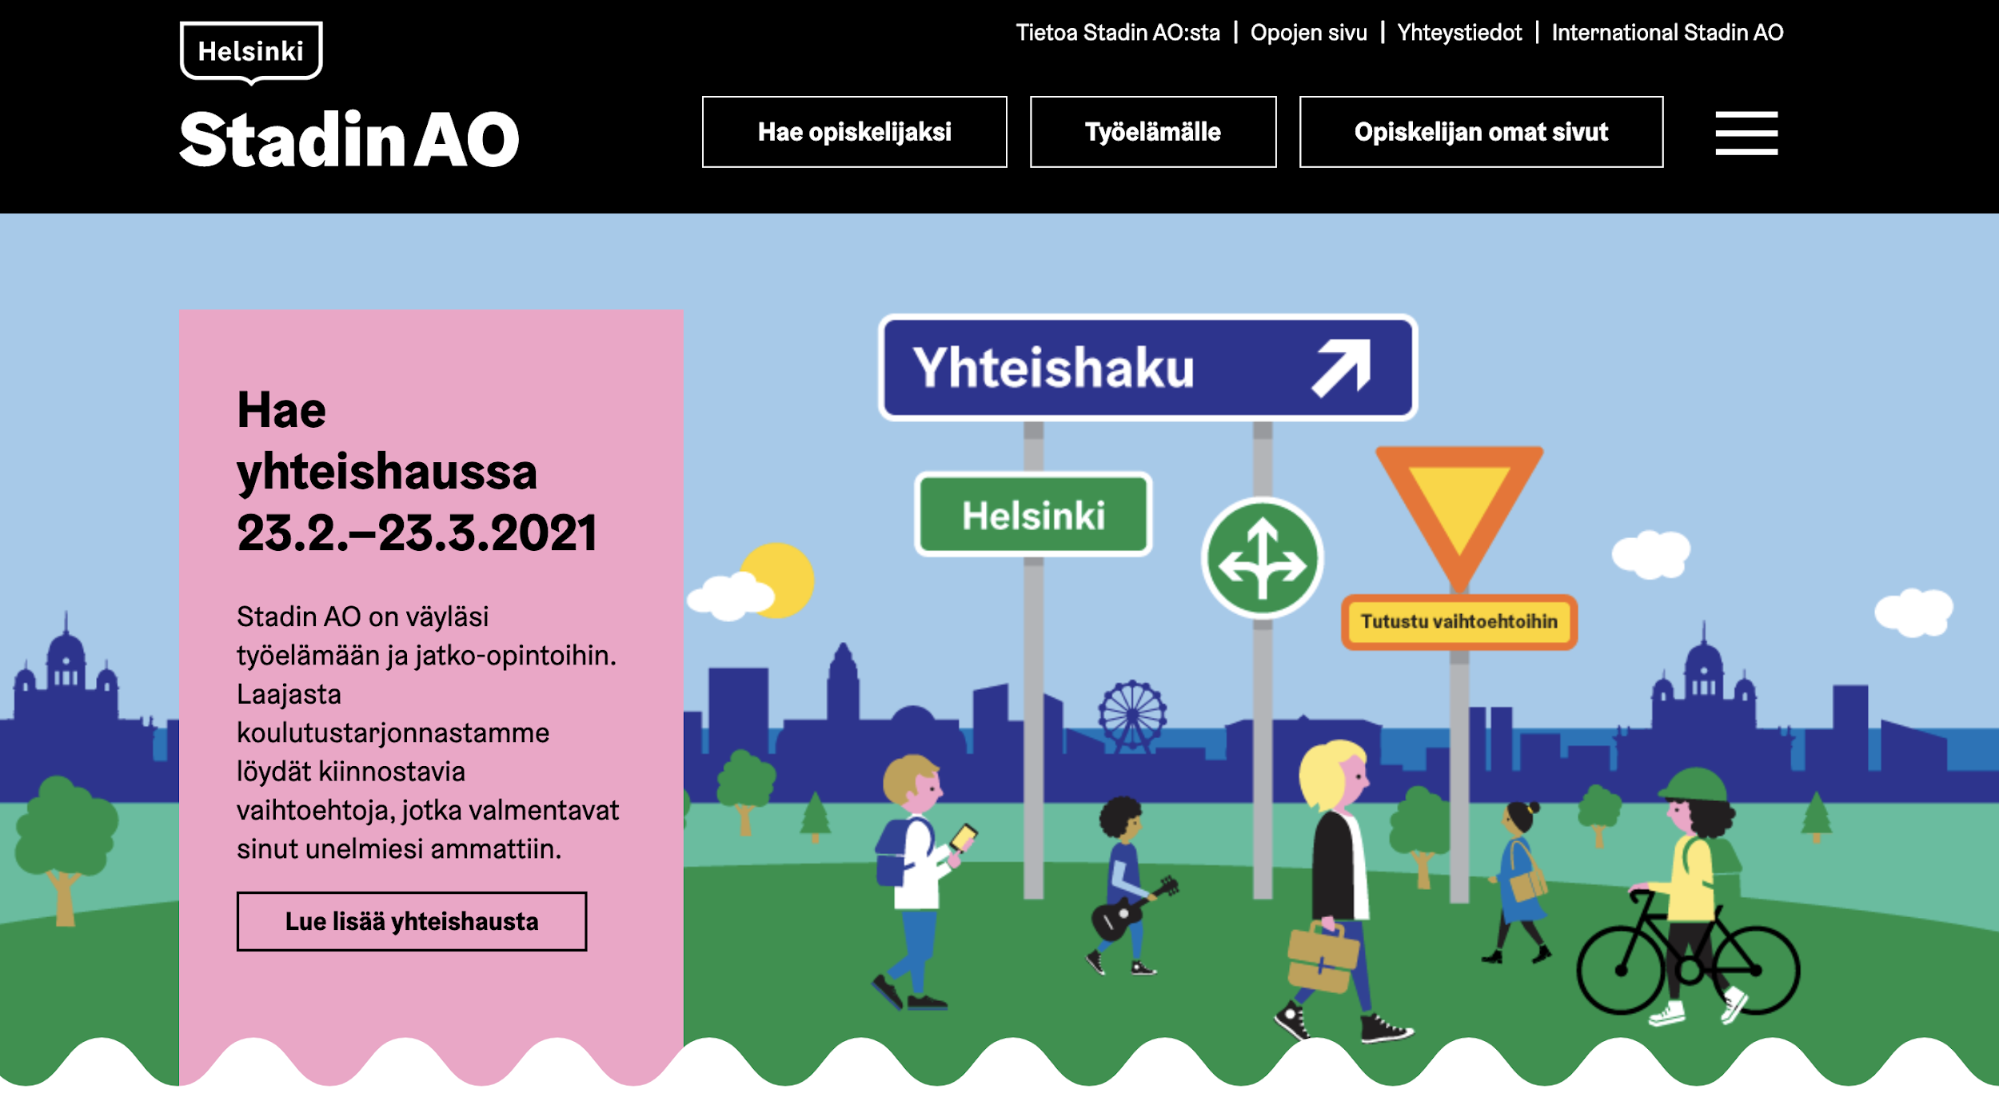 Image of the Stadin AO website